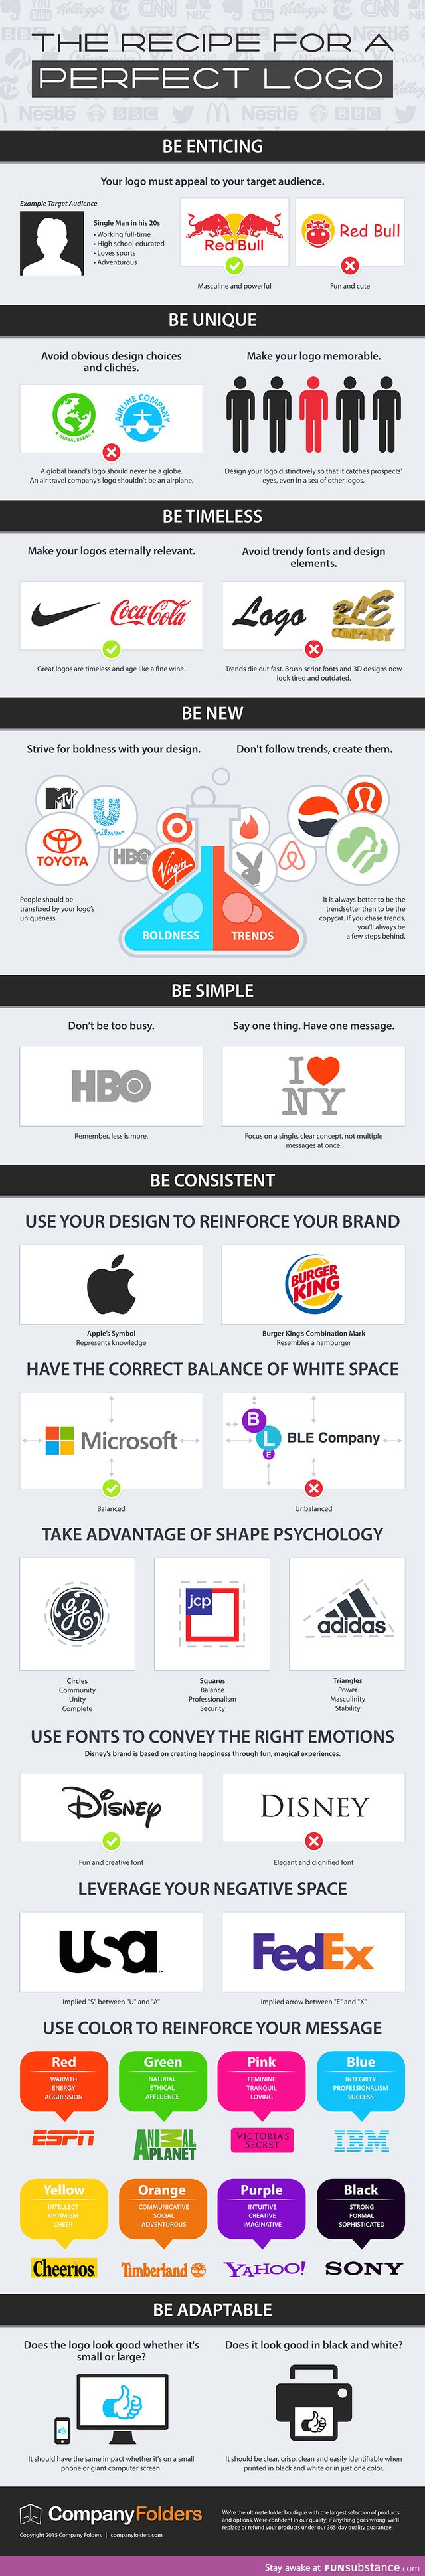 design, perfect, business, logo, (Infographic)